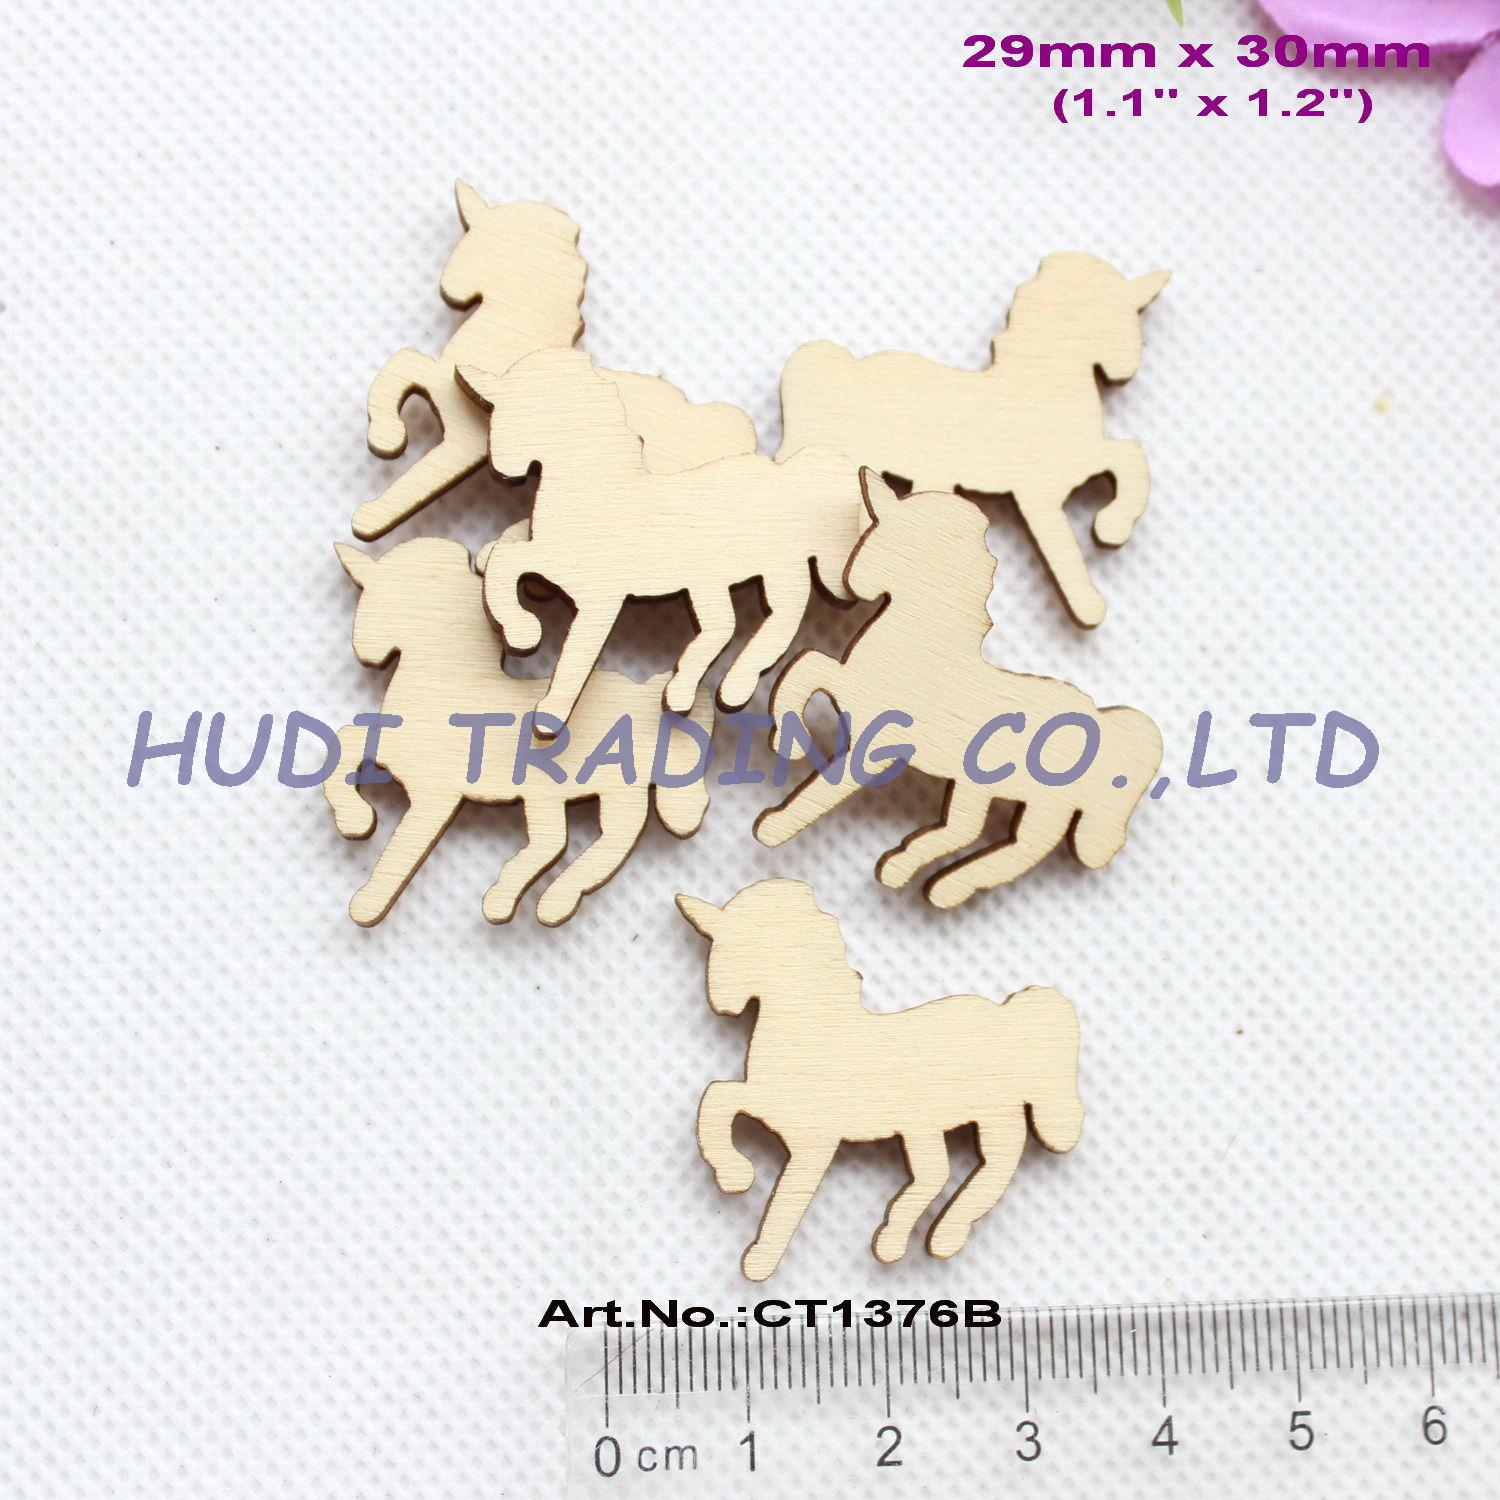 (100pcslot) 30mm Natural Blank Wooden Unicorn Brooches (no pin) Ornaments Rustic Wood Favor Unicorn 1.2- CT1376B